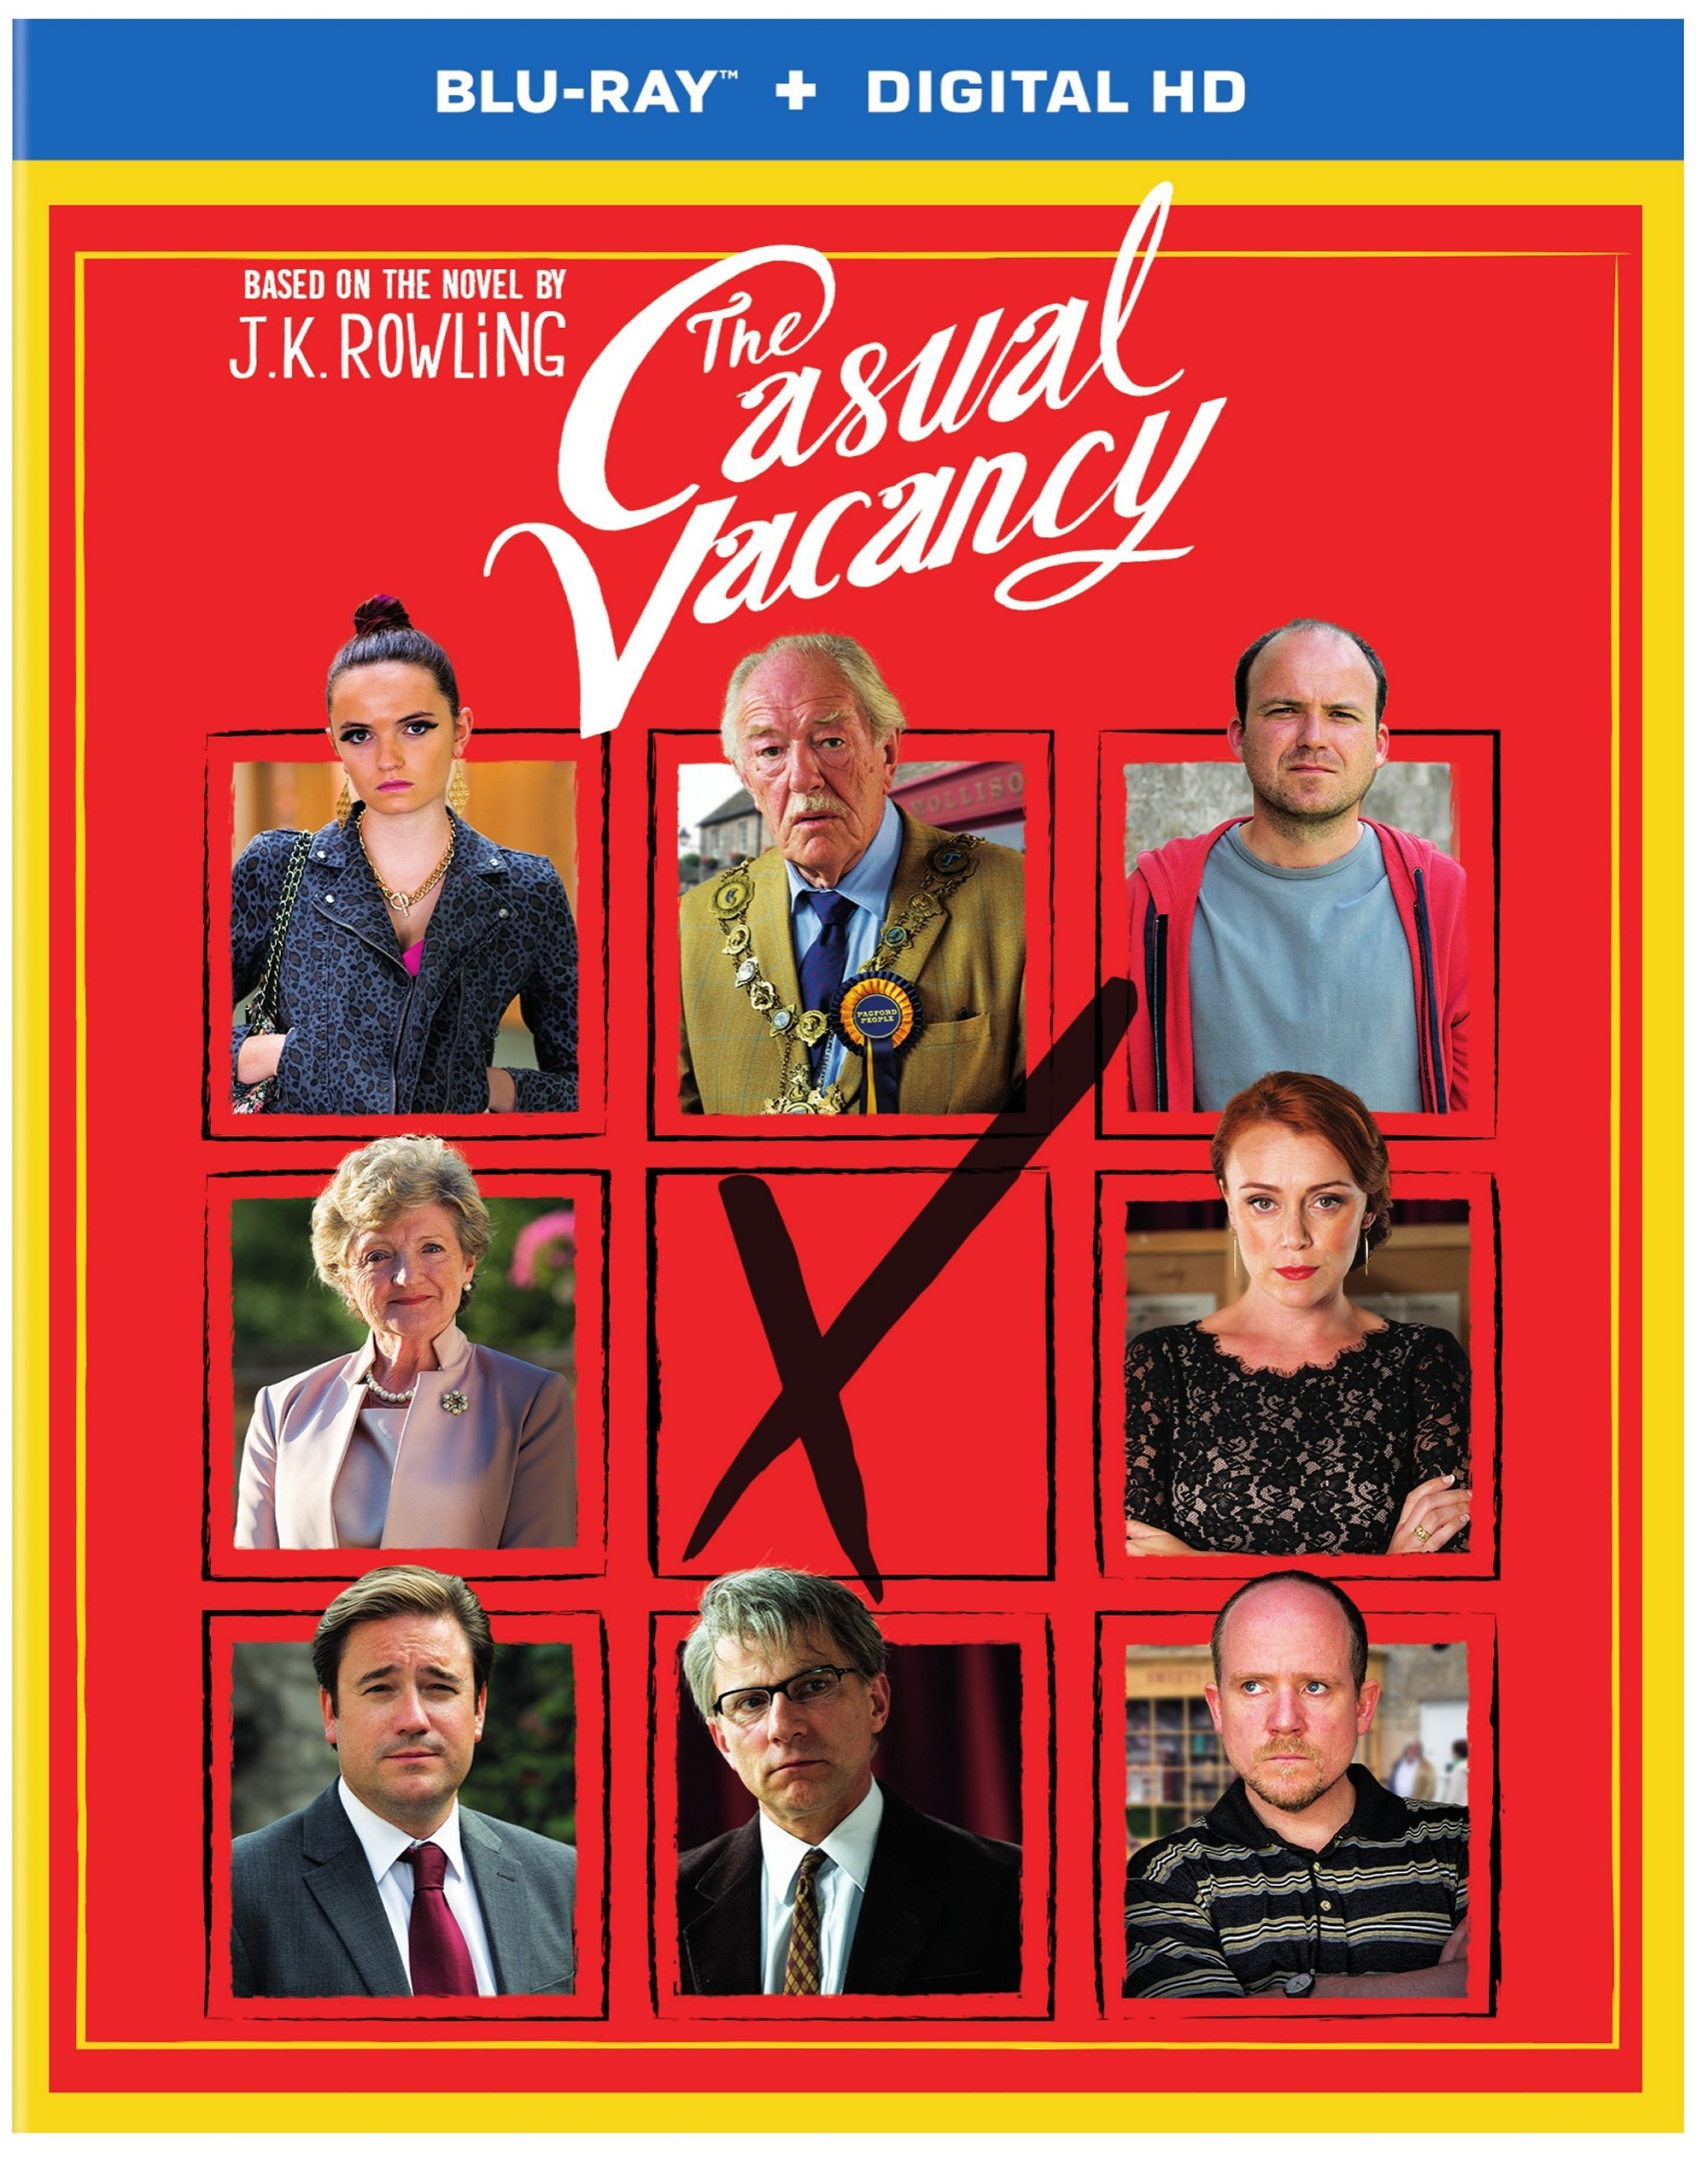 Blu-ray : The Casual Vacancy (Dolby, Digital Theater System, Widescreen)